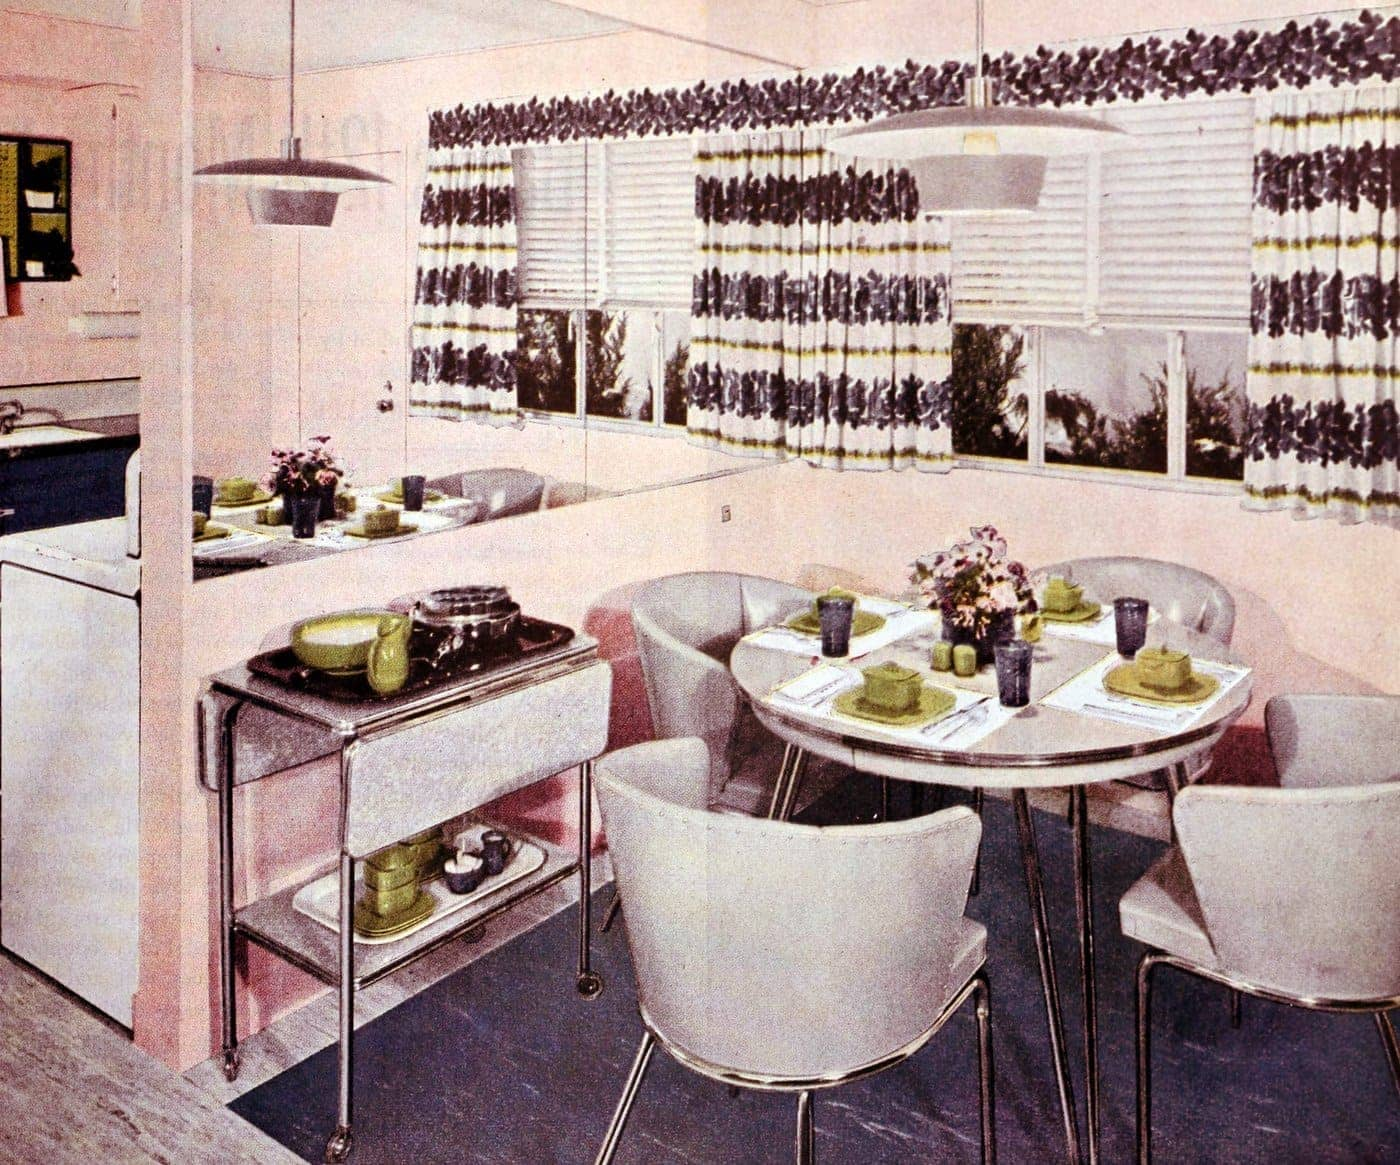 Pale pink vintage kitchen from the fifties